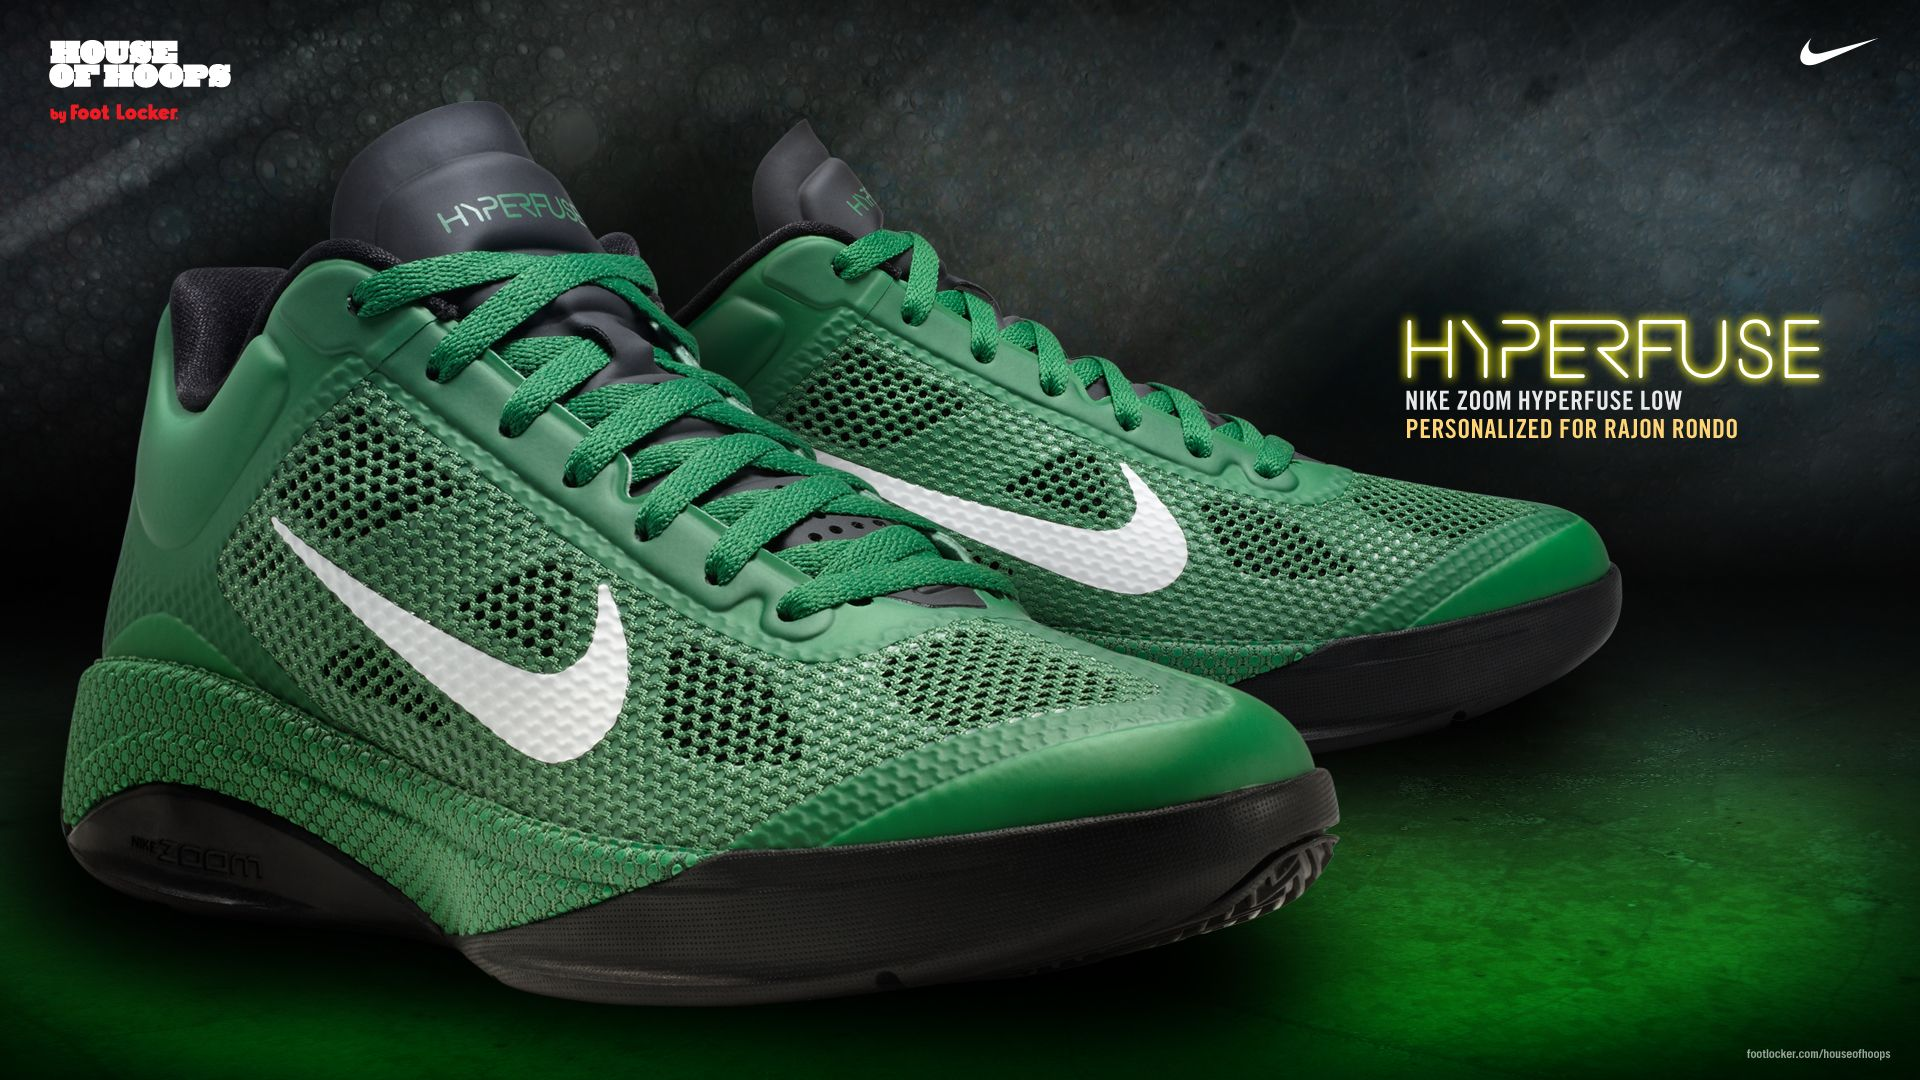 nike hyperfuse low rondo